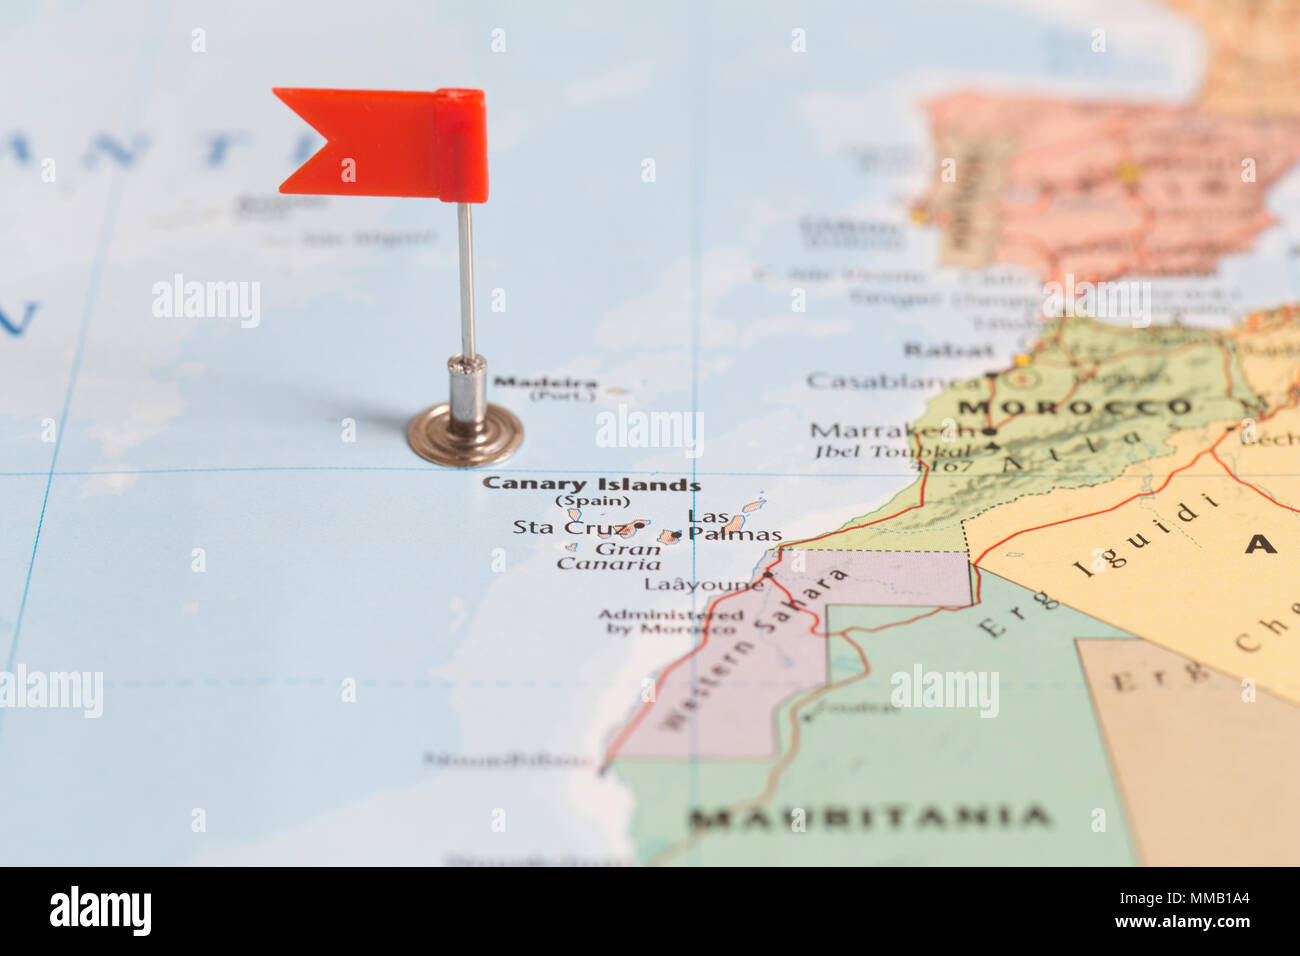 Canary islands map stock photos canary islands map stock images small red flag marking the canary islands on a world map stock image gumiabroncs Images